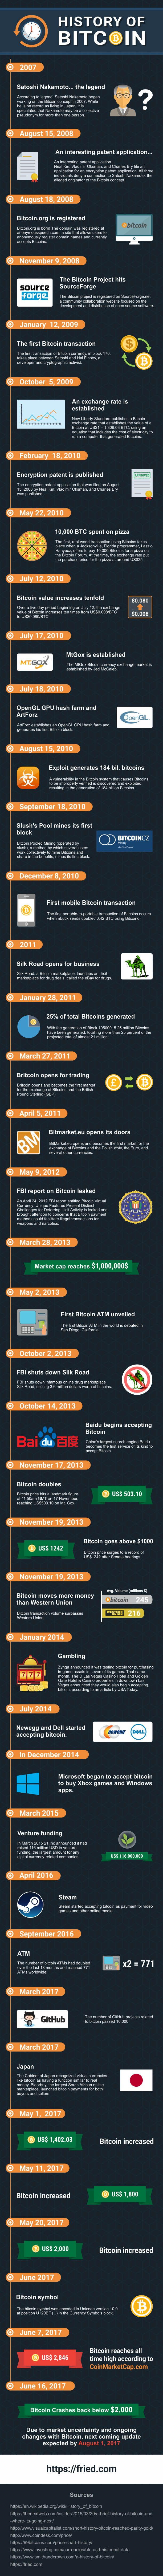 Here is a long-form infographic courtesy of fried.com detailing the history of BitCoin cryptocurrency from its inception to the present day.